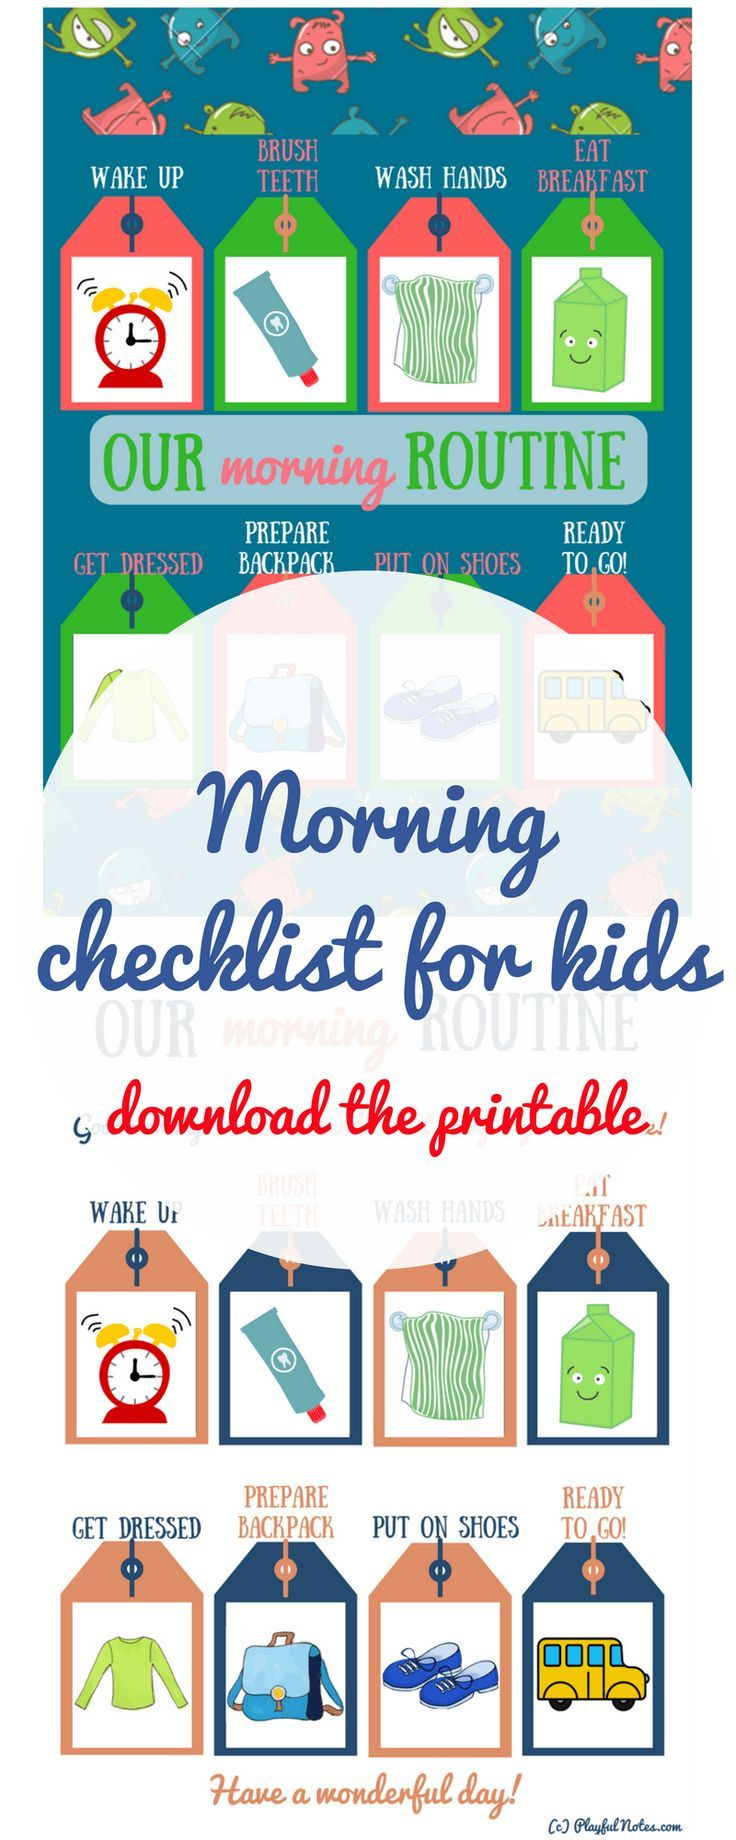 Morning Routine. #Checklist. #Printables. #NewRules